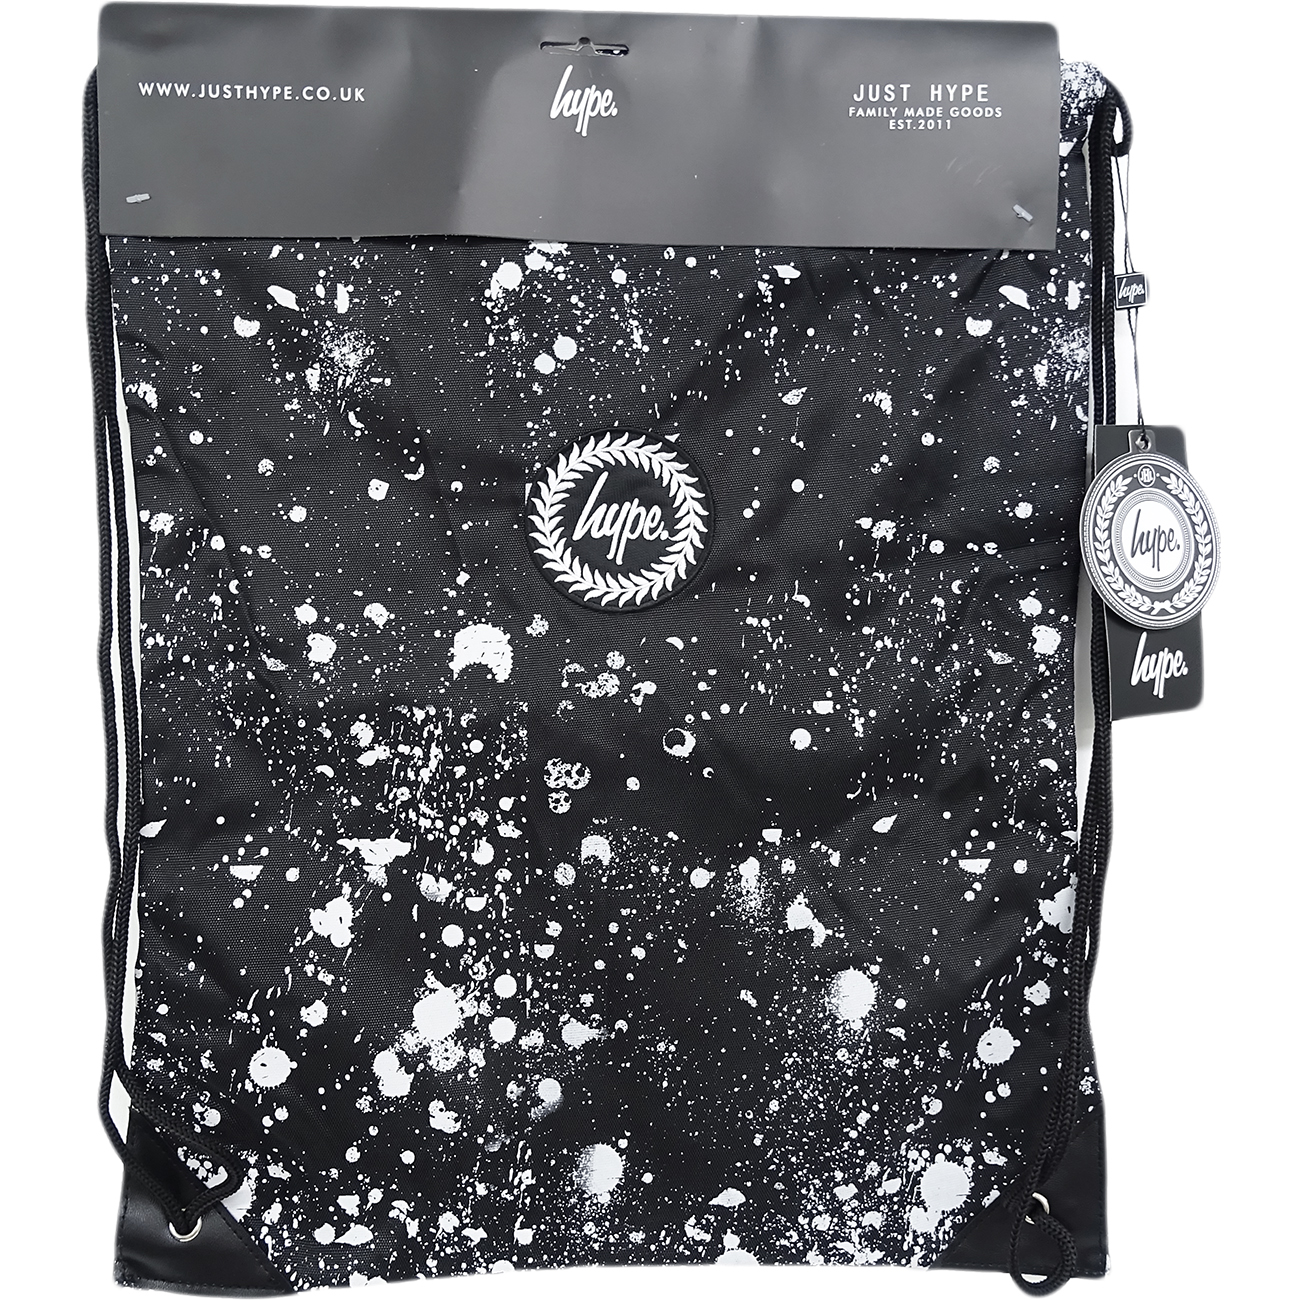 Just Hype Drawstring Bags - Speckle Crest Black